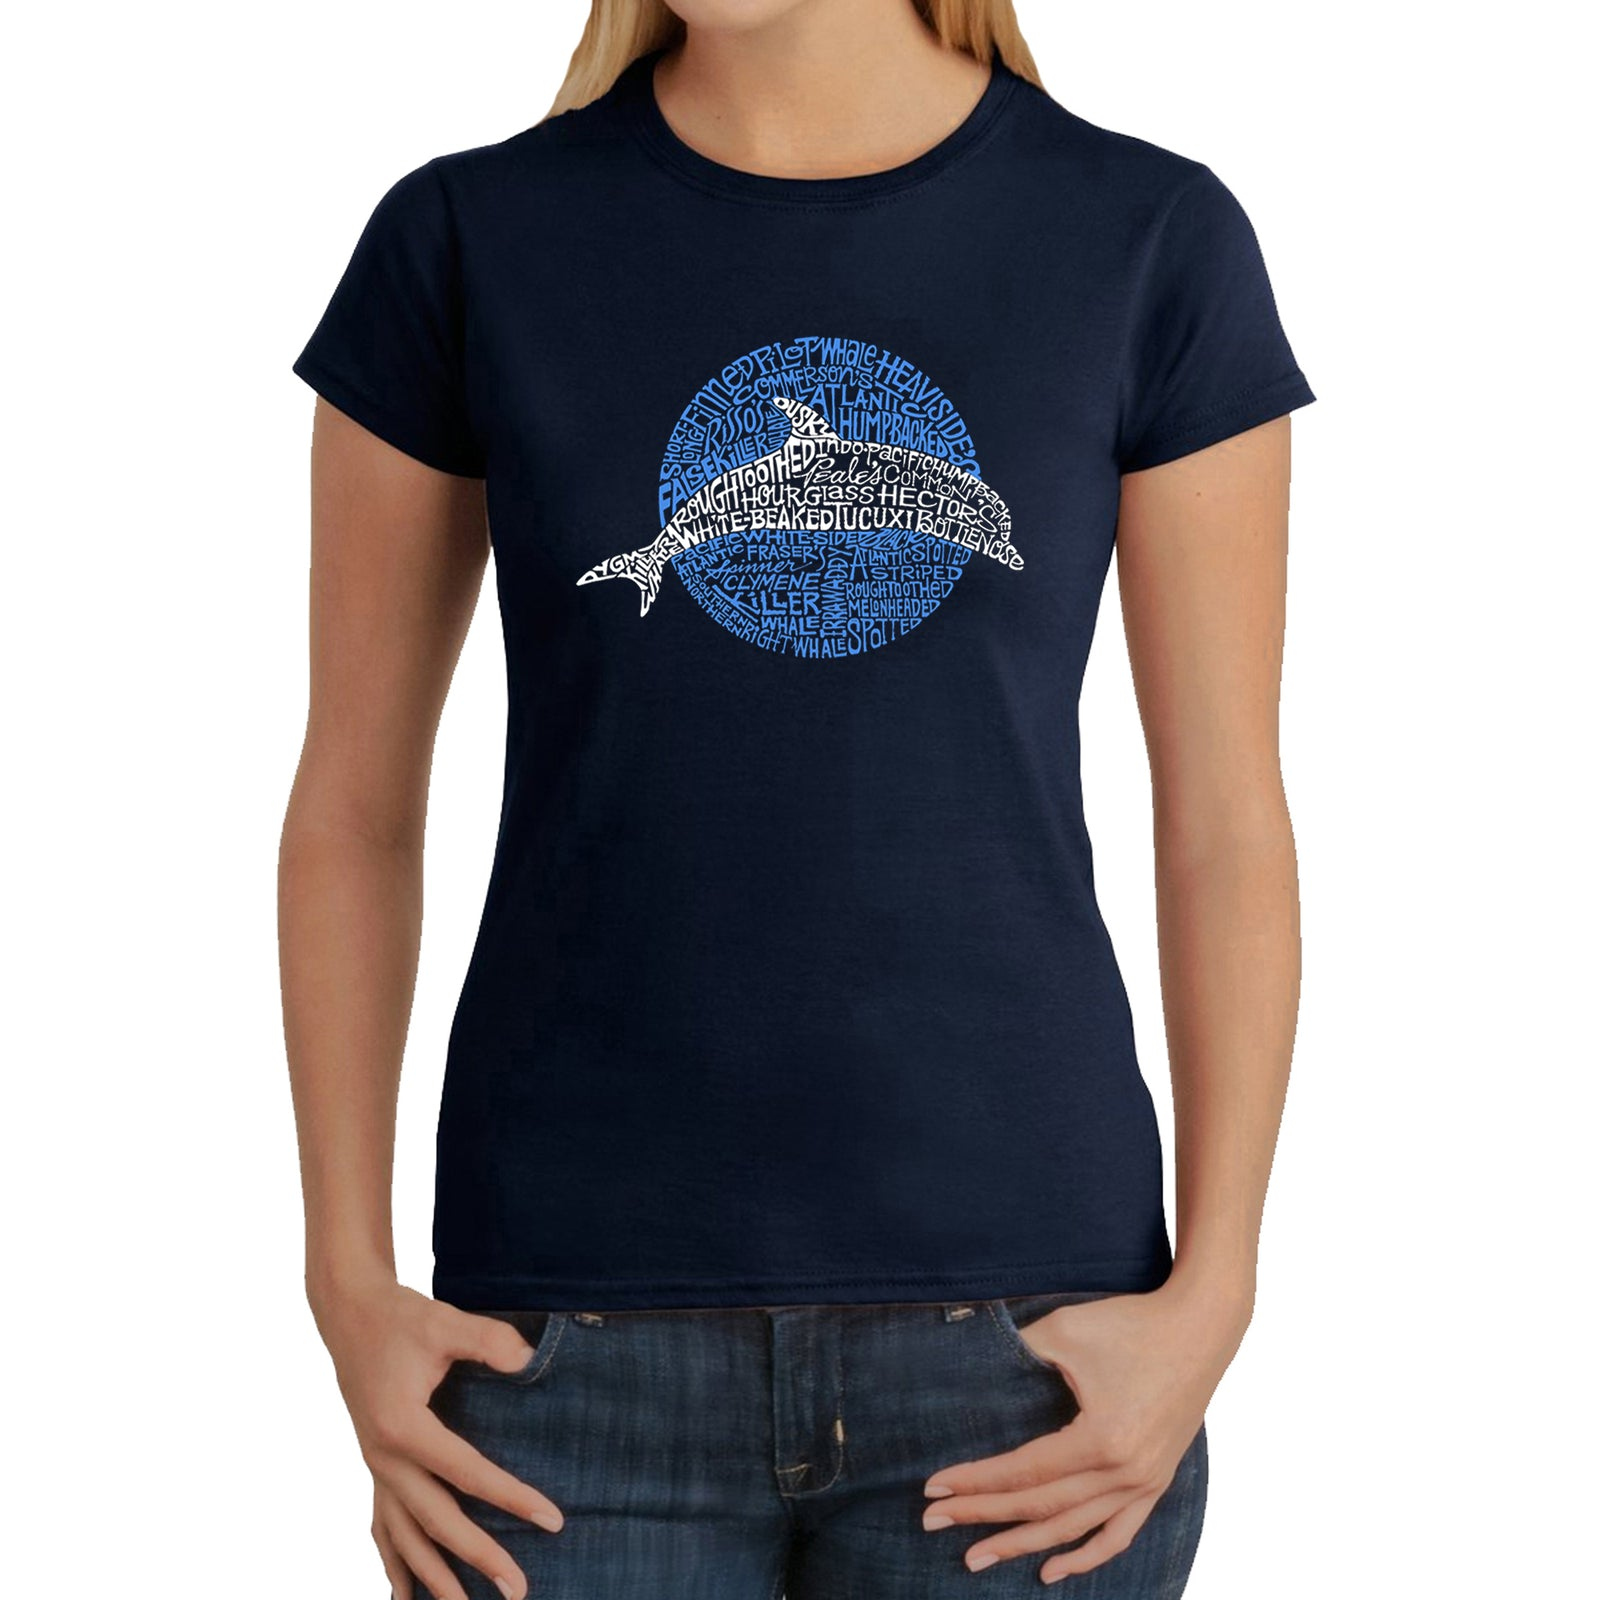 Women's Word Art T-Shirt - Species of Dolphin